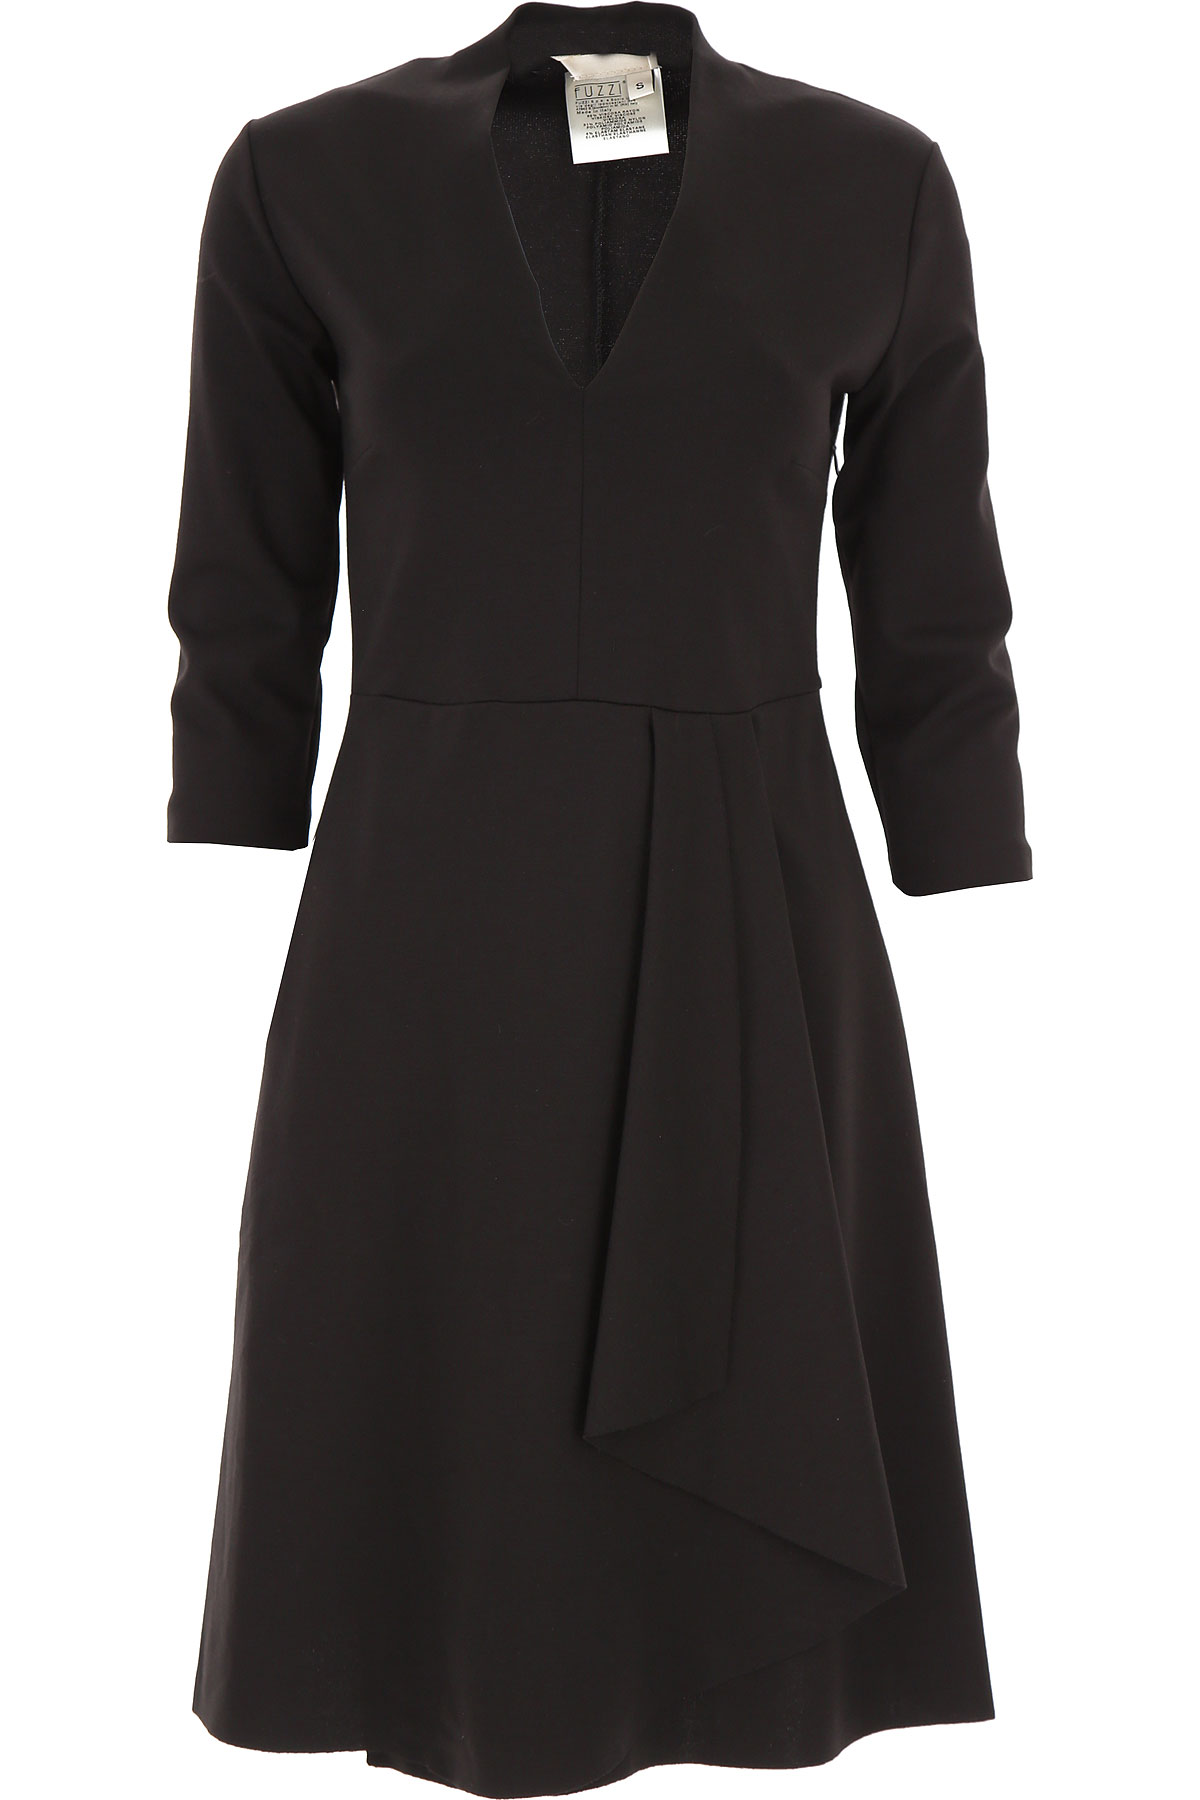 Fuzzi Dress for Women, Evening Cocktail Party On Sale, Black, Viscose, 2019, 6 8